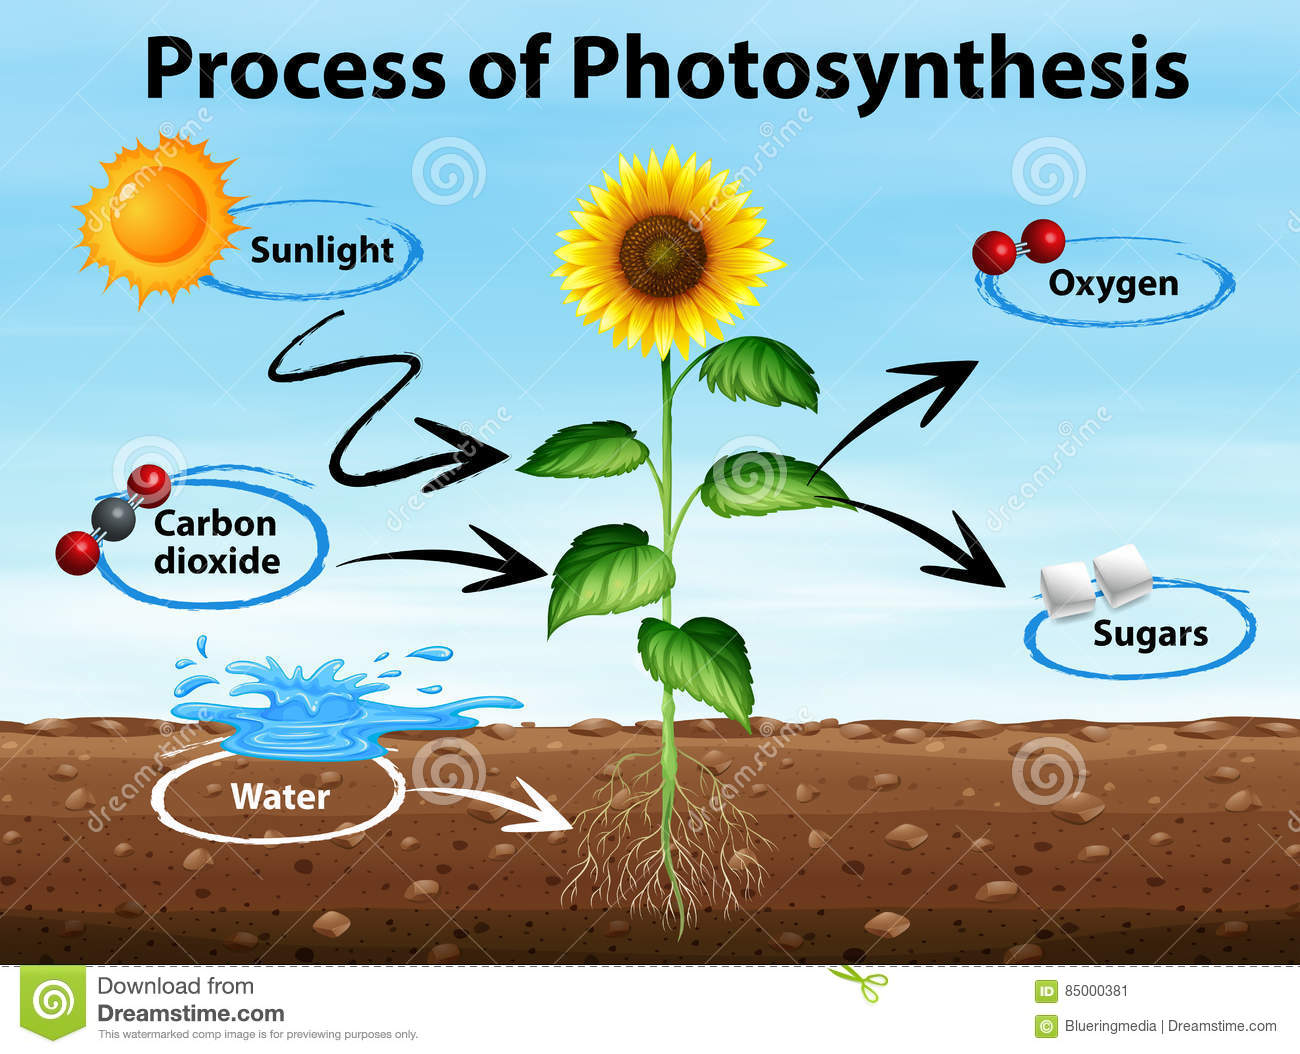 reflection on how photosynthesis is a process